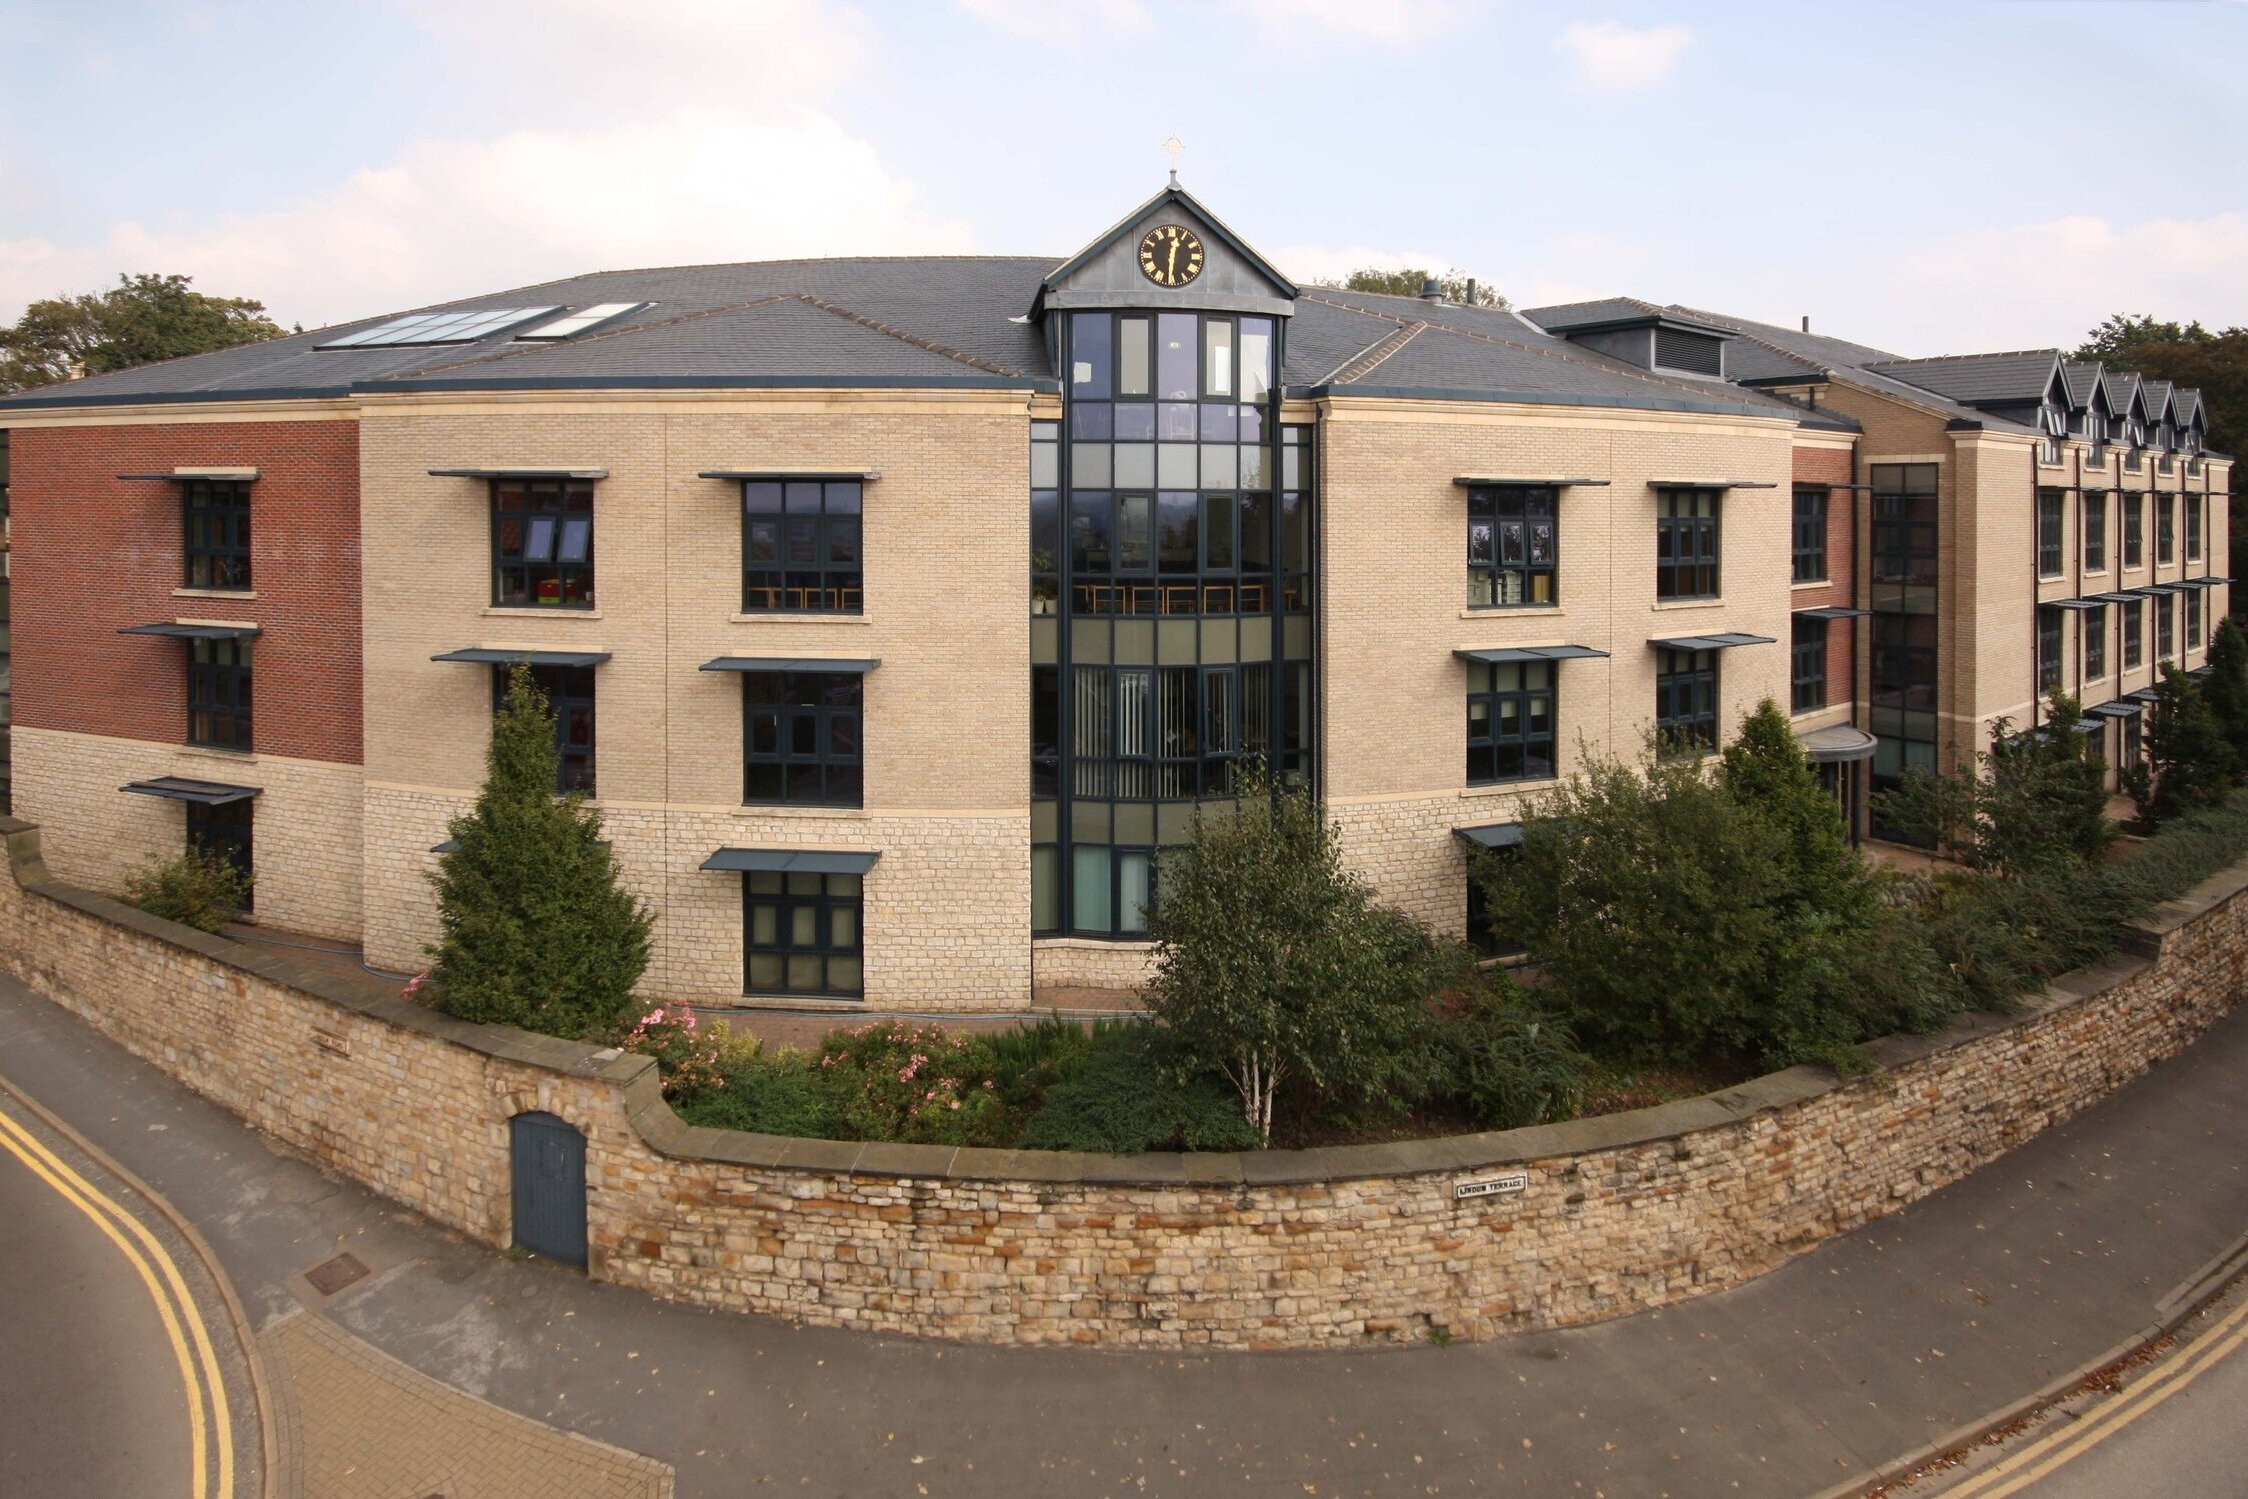 Lincoln Minster Senior School - Location: Lincoln, LincolnshireValue: £120,000.00Sector: EducationProducts: Aluminium casement windows, curtain walling and commercial entrance doors.